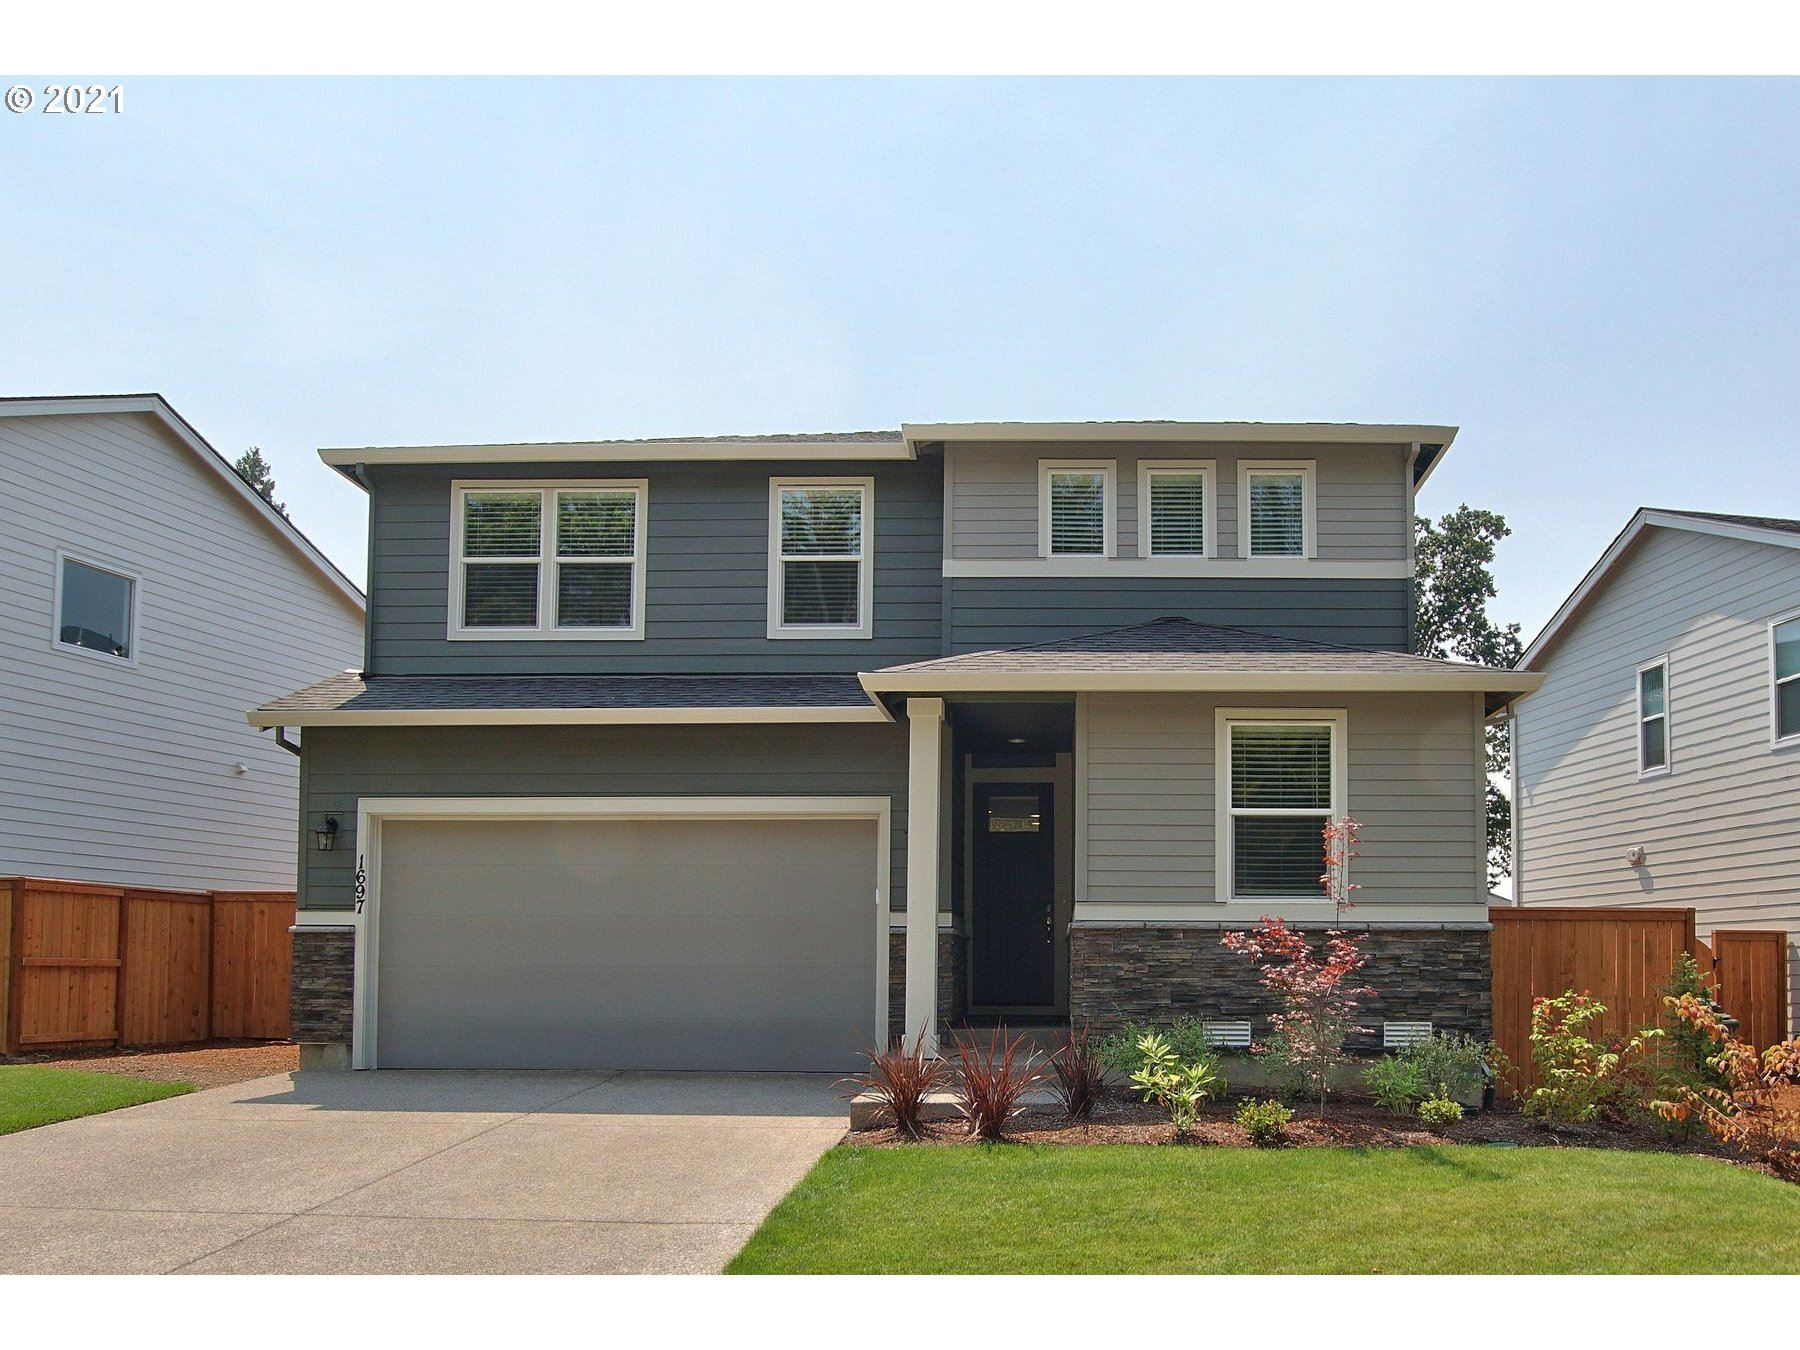 Photo of 1697 N SYCAMORE ST, Canby, OR 97013 (MLS # 21526515)